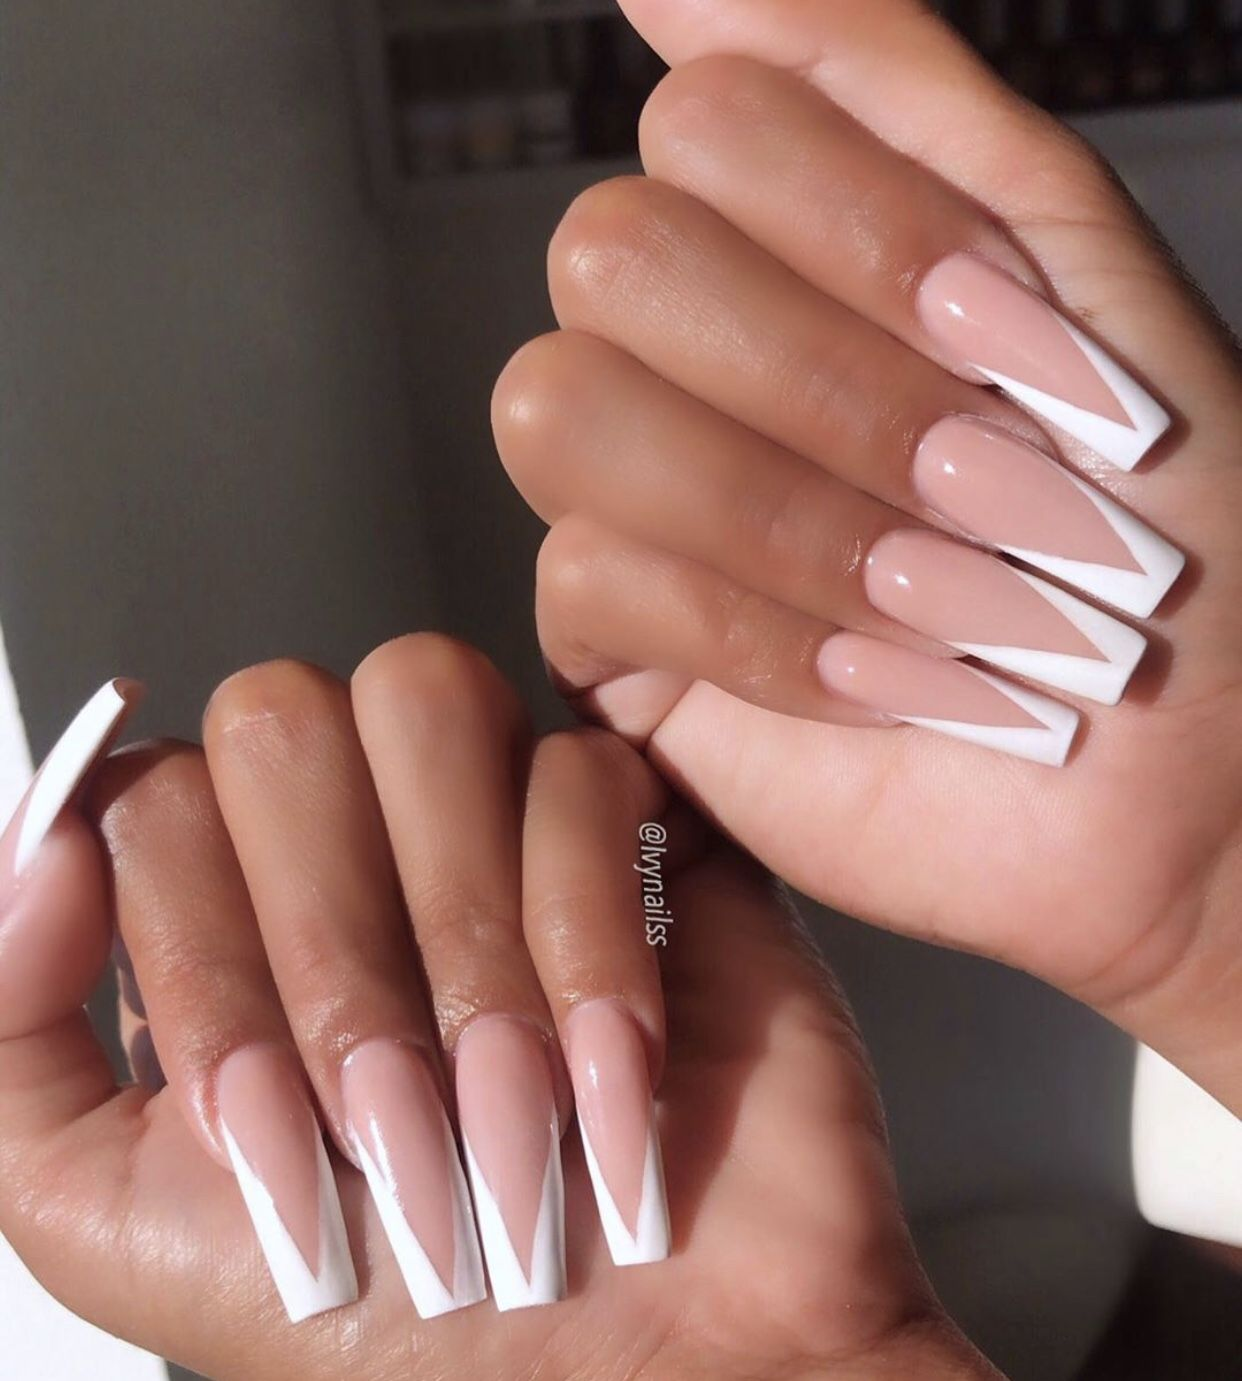 Pin By Kassy M On Nails In 2020 White Tip Acrylic Nails Long Square Acrylic Nails Square Acrylic Nails